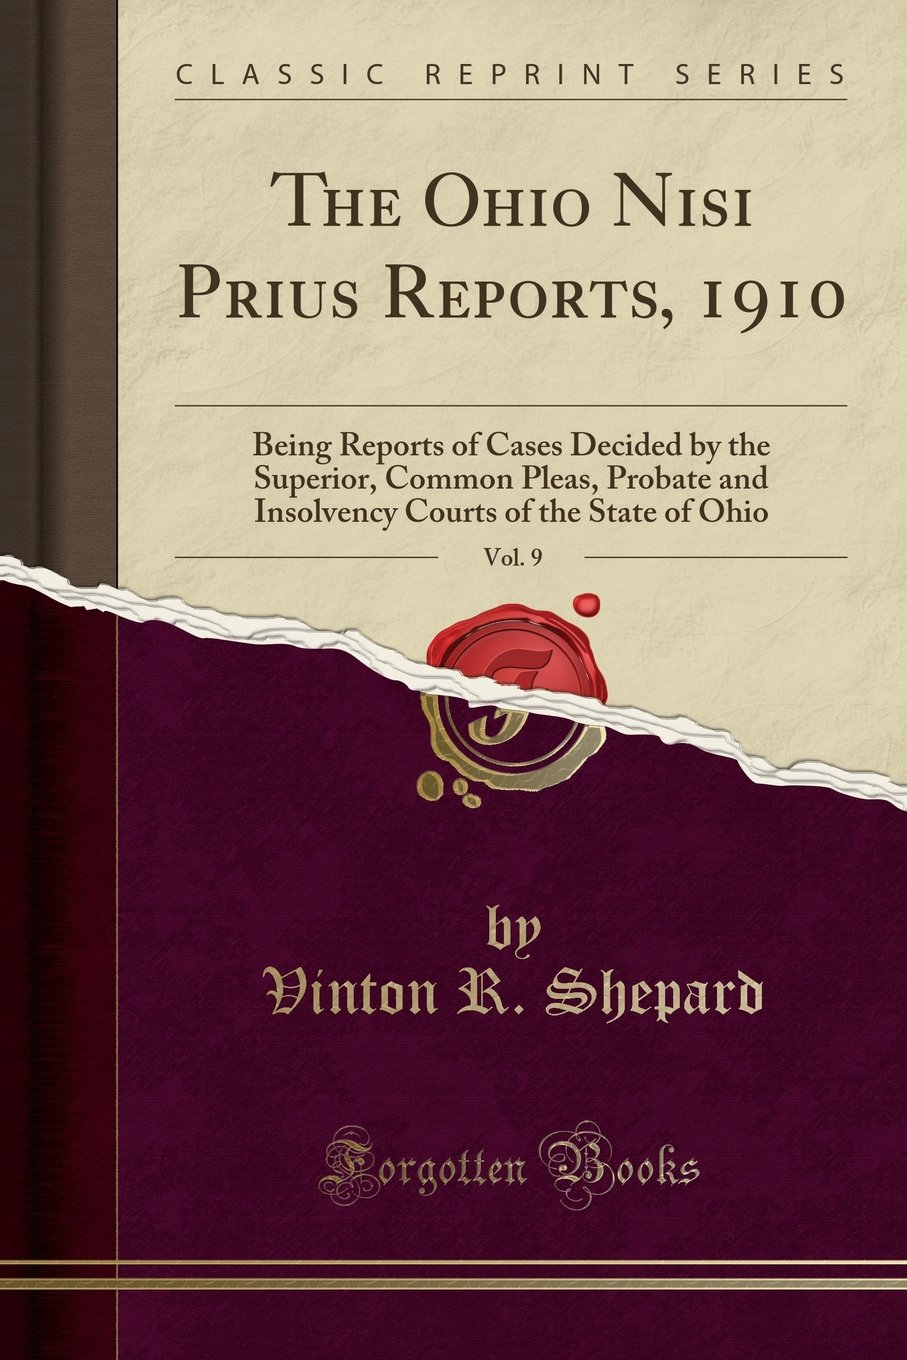 Read Online The Ohio Nisi Prius Reports, 1910, Vol. 9: Being Reports of Cases Decided by the Superior, Common Pleas, Probate and Insolvency Courts of the State of Ohio (Classic Reprint) pdf